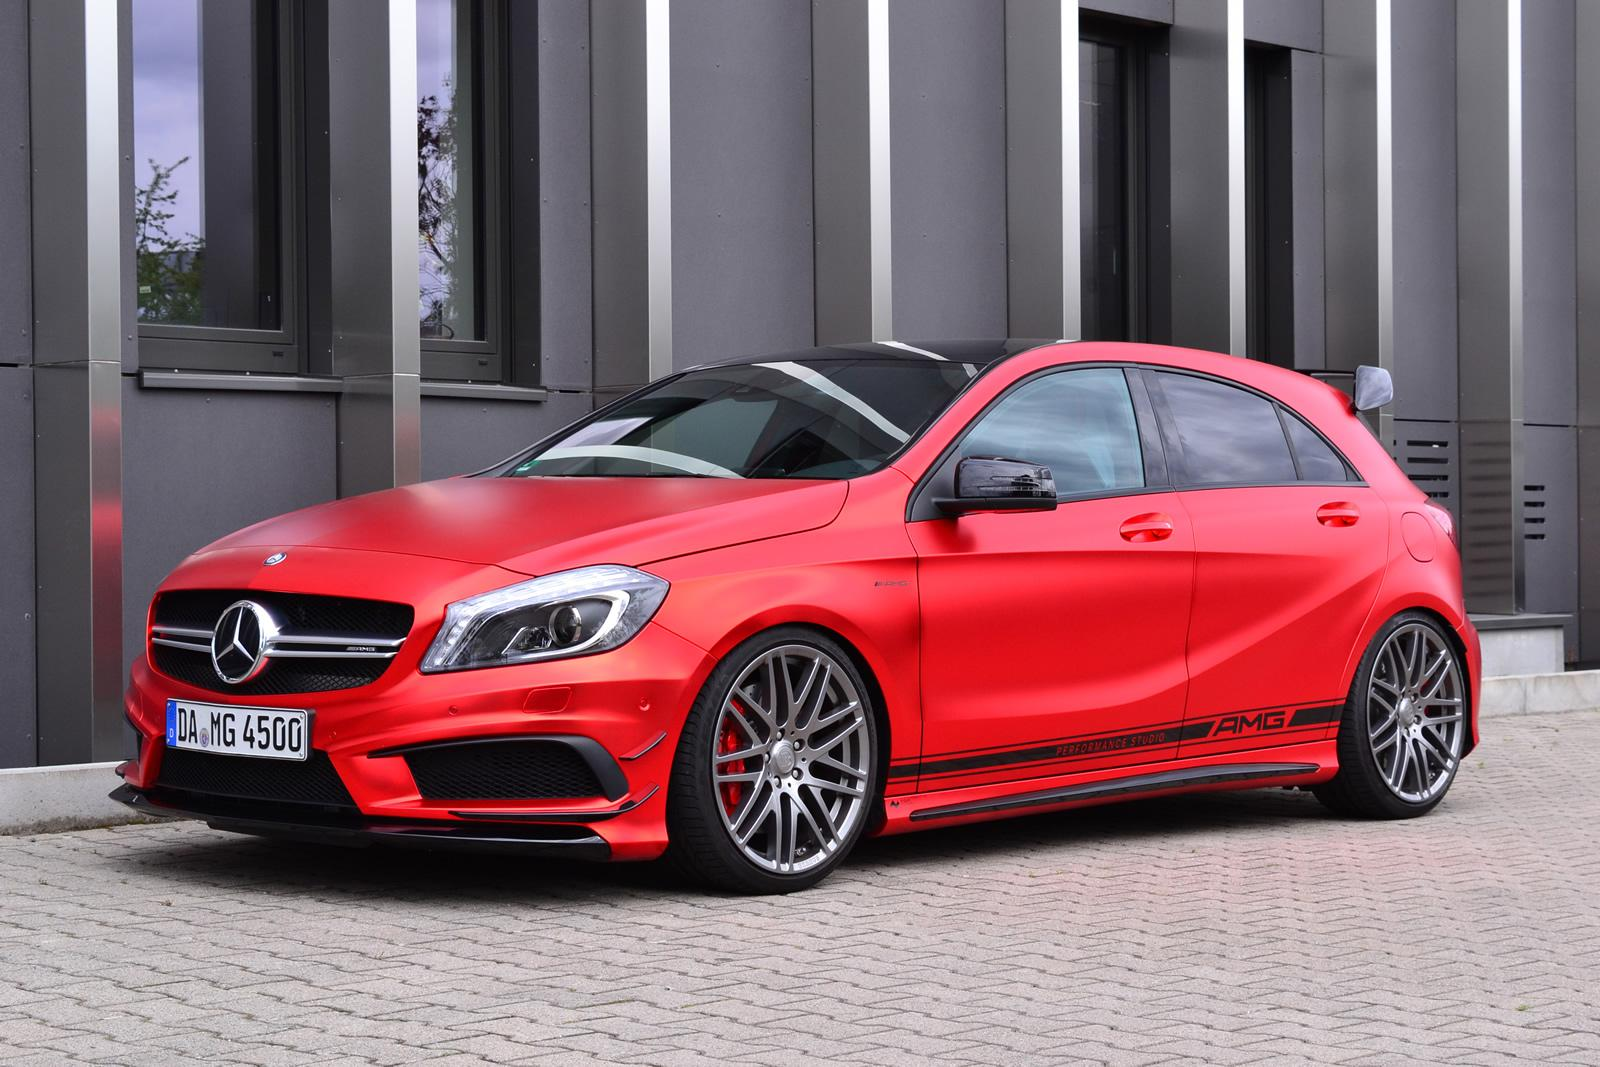 https://s1.cdn.autoevolution.com/images/news/gallery/mercedes-benz-a45-amg-gets-wrapped-into-wonderful-red-matte-foil_11.jpg